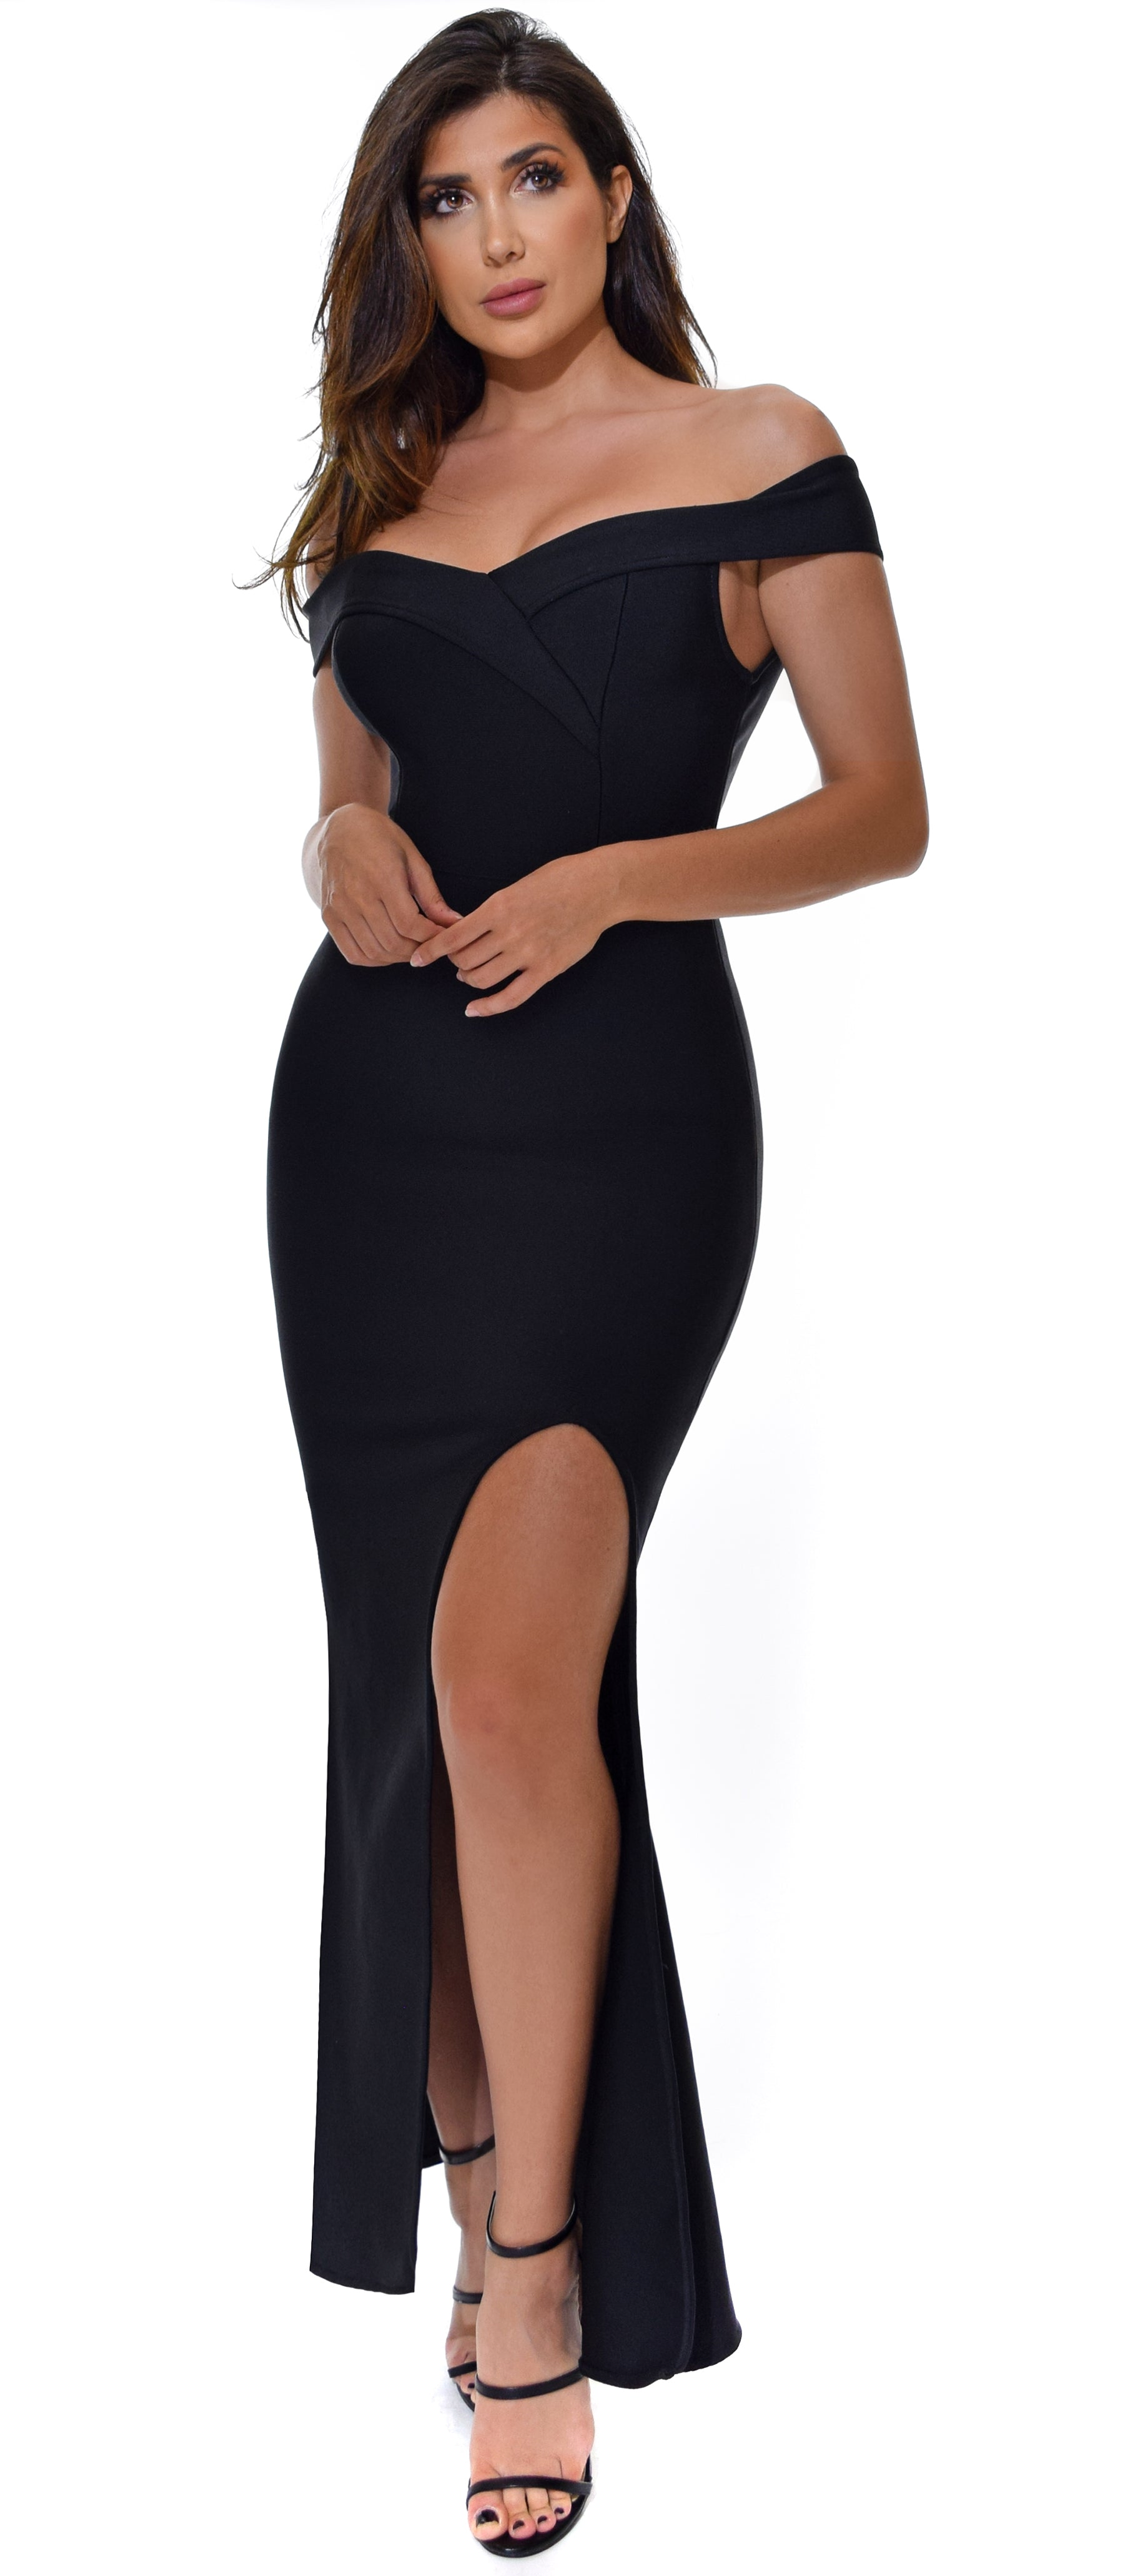 Anvi Black Off Shoulder Slit Bandage Maxi Dress - Emprada